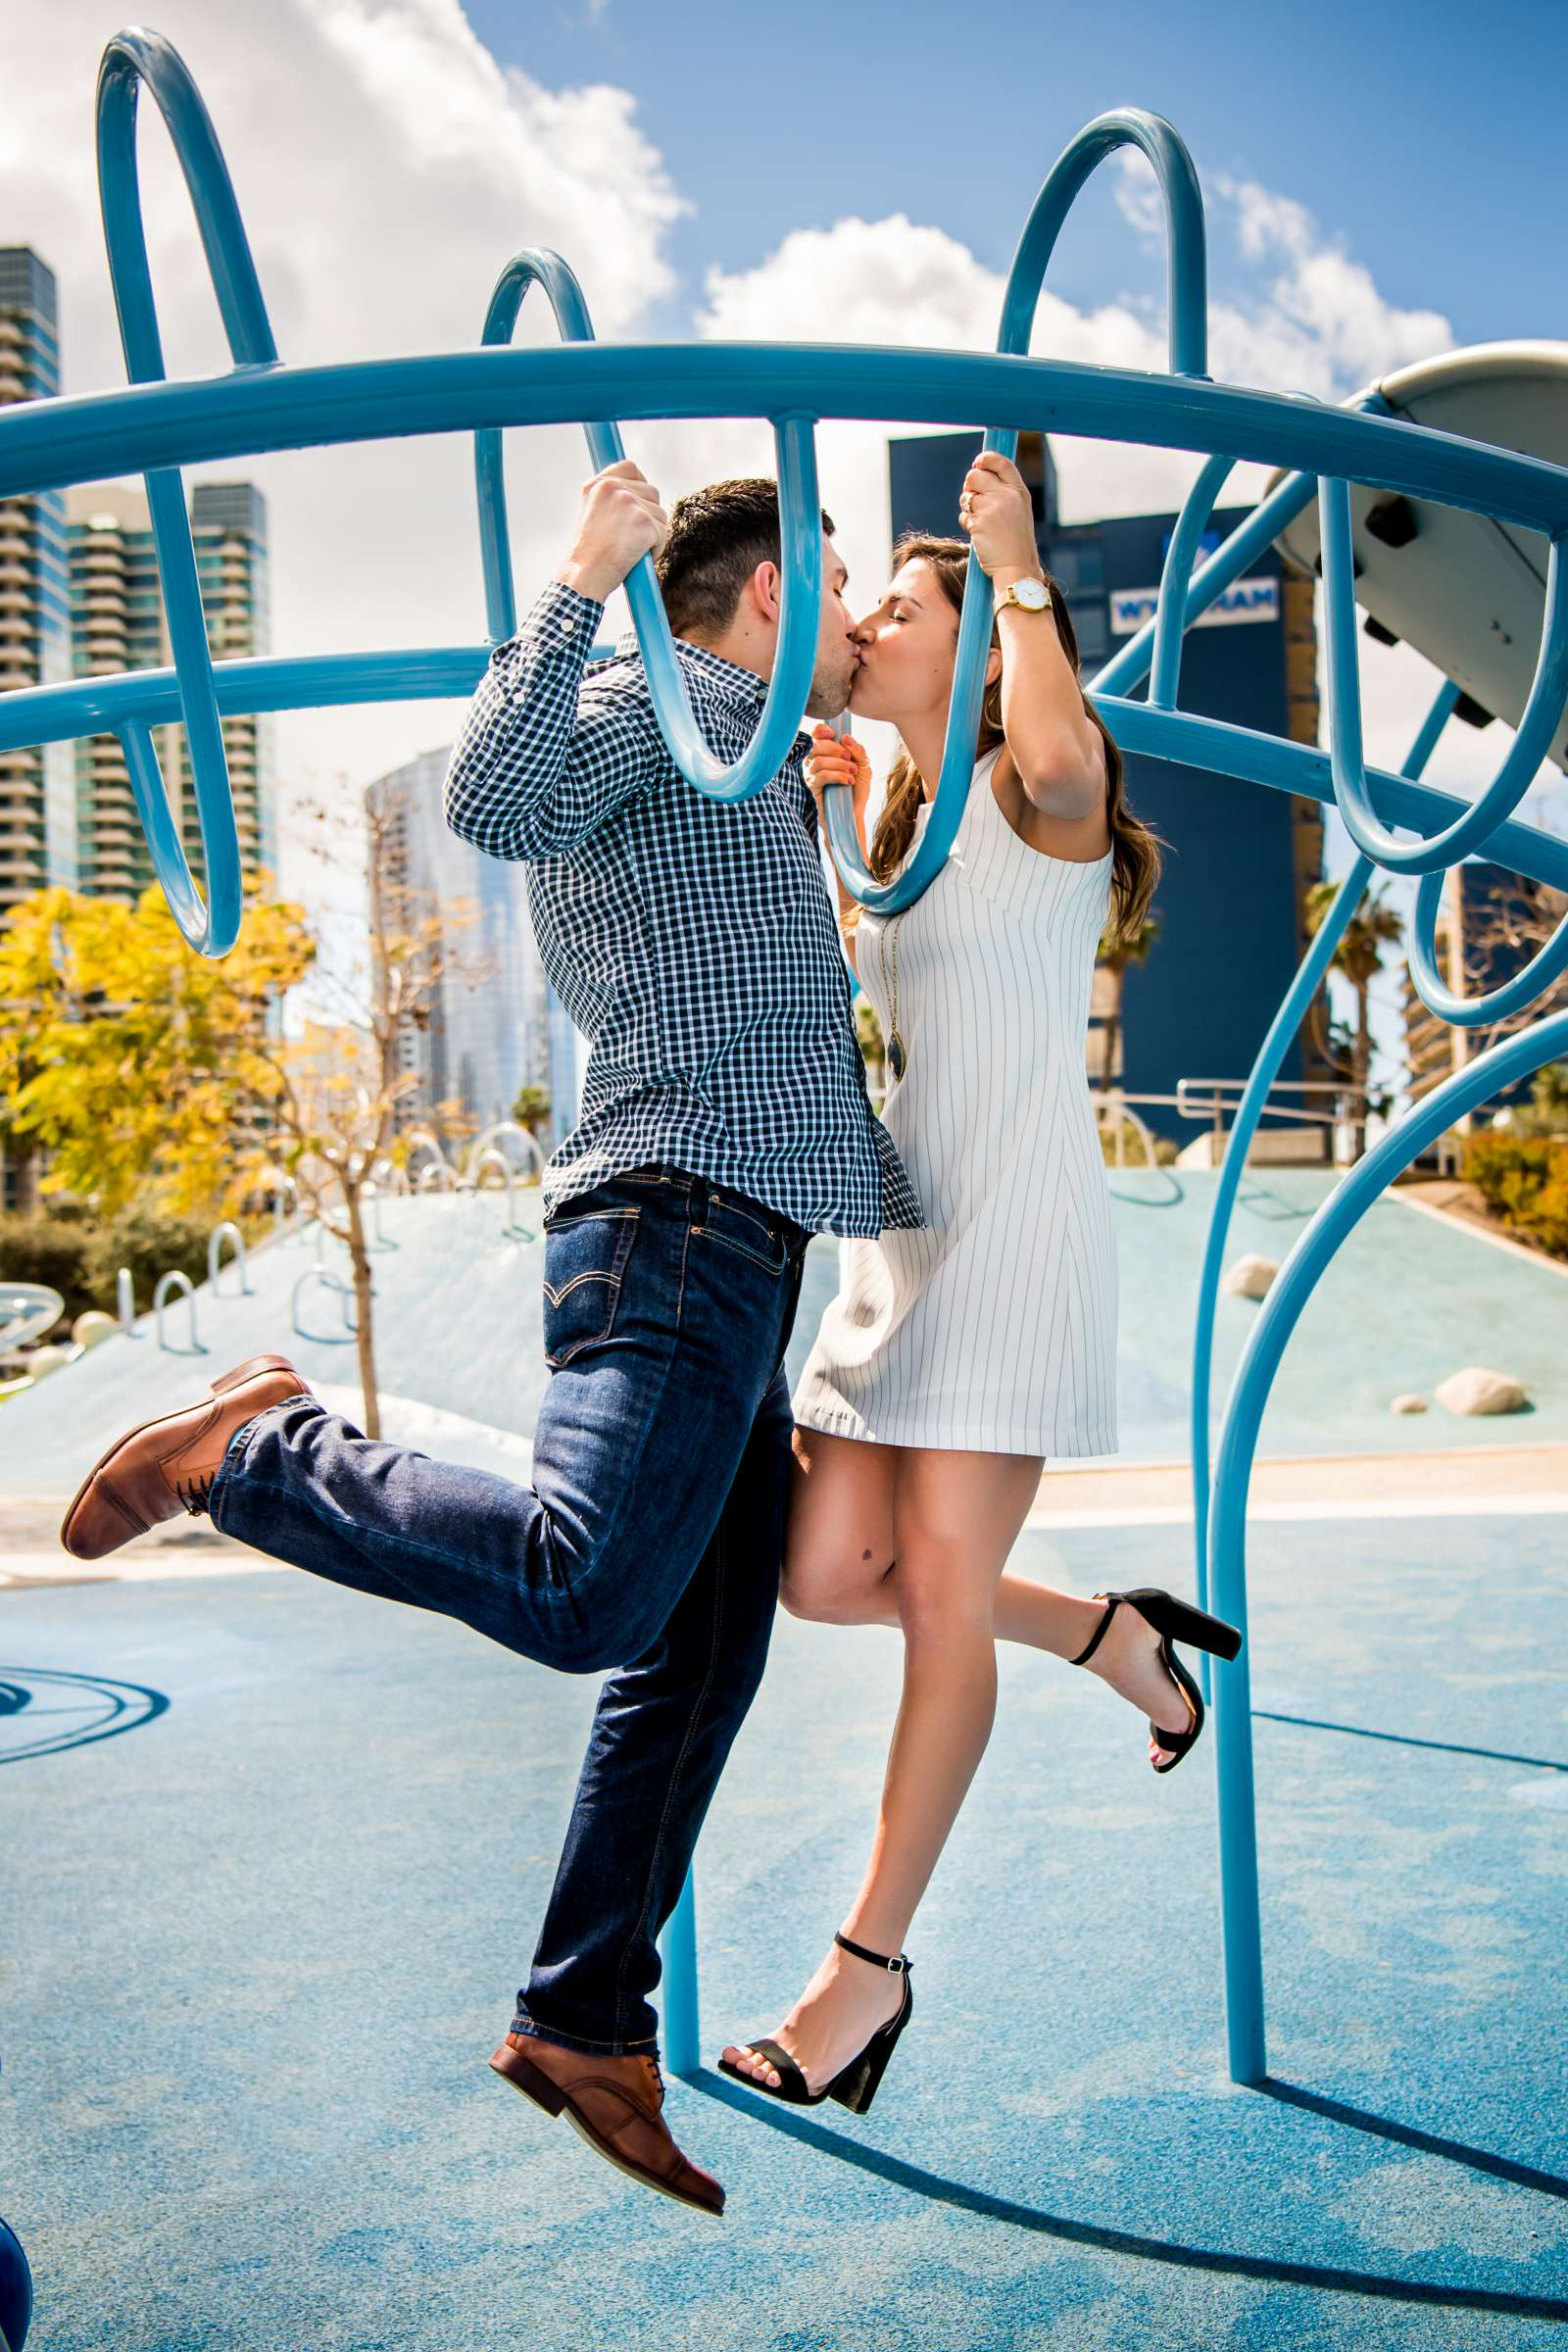 San Diego Courthouse Engagement, Amanda and Stephano Engagement Photo #39 by True Photography